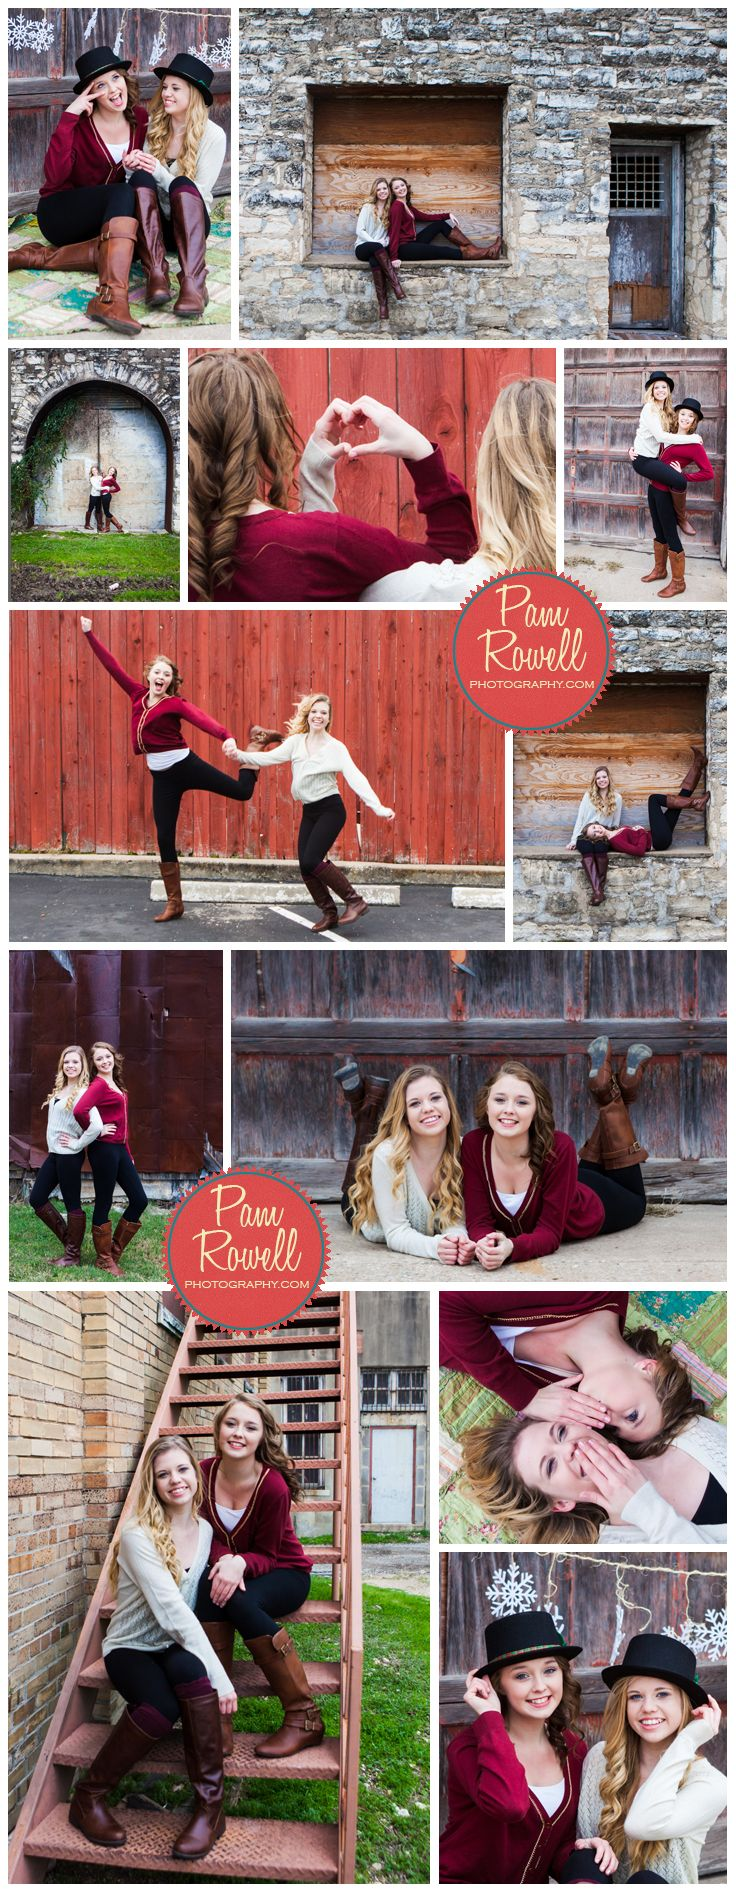 A few months ago I did a Best Friends Photo Session on Instagram. Kye and her friend Katie won one of the free sessions! We were trying to get them done before Kye left to go out of town, so we picked the coldest day possible! It was 23 degrees. We were planning a winter session, but their winter…